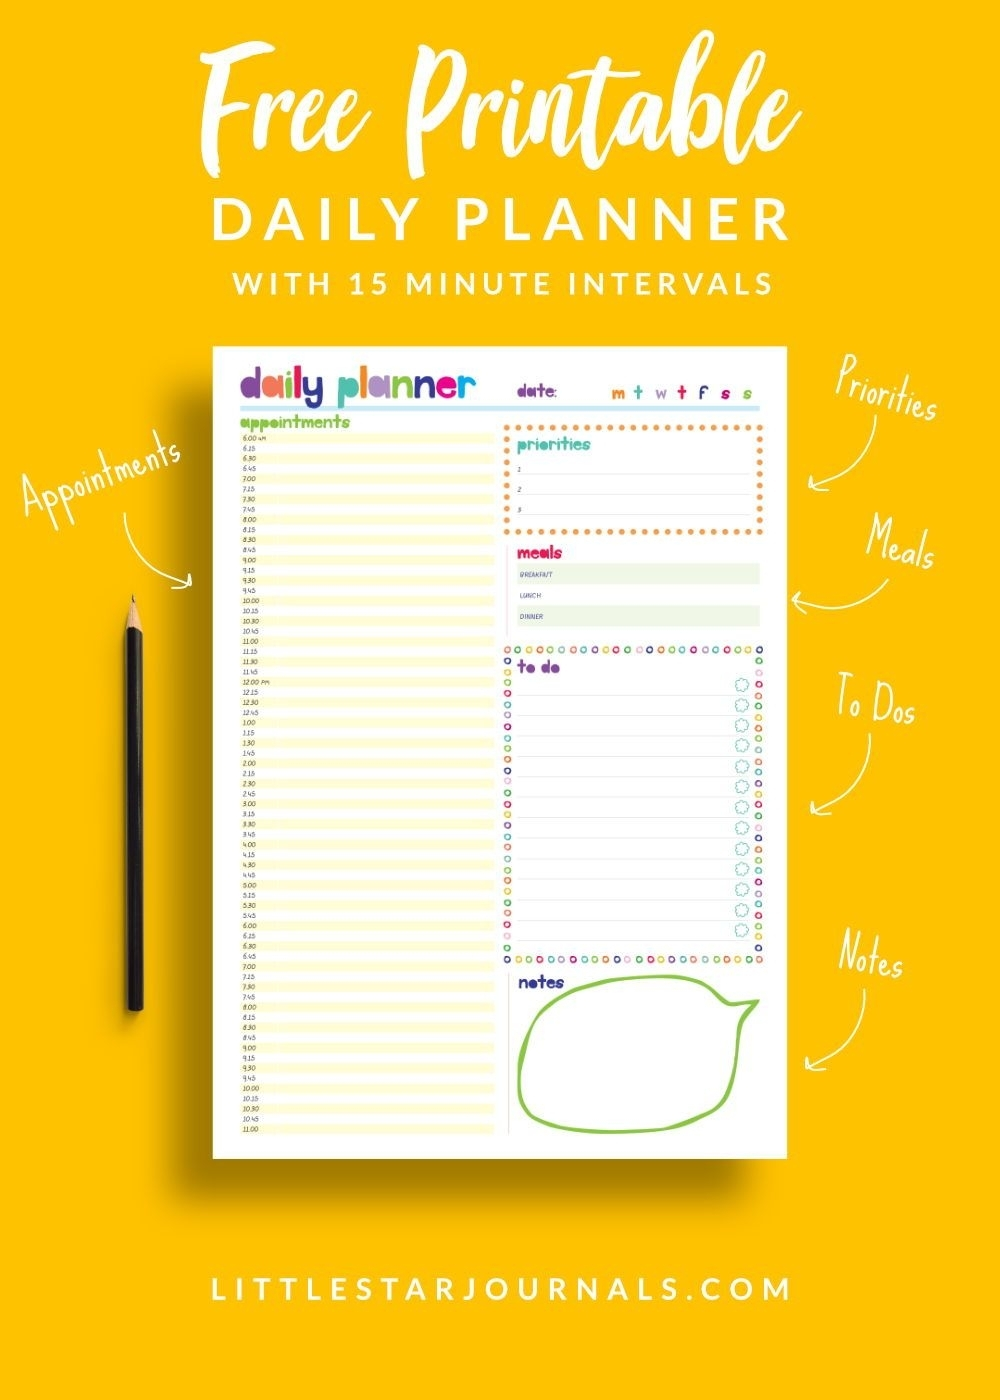 Free 15 Minute Daily Planner Printable | Daily Planner pertaining to Free Printable 15 Minute Planner